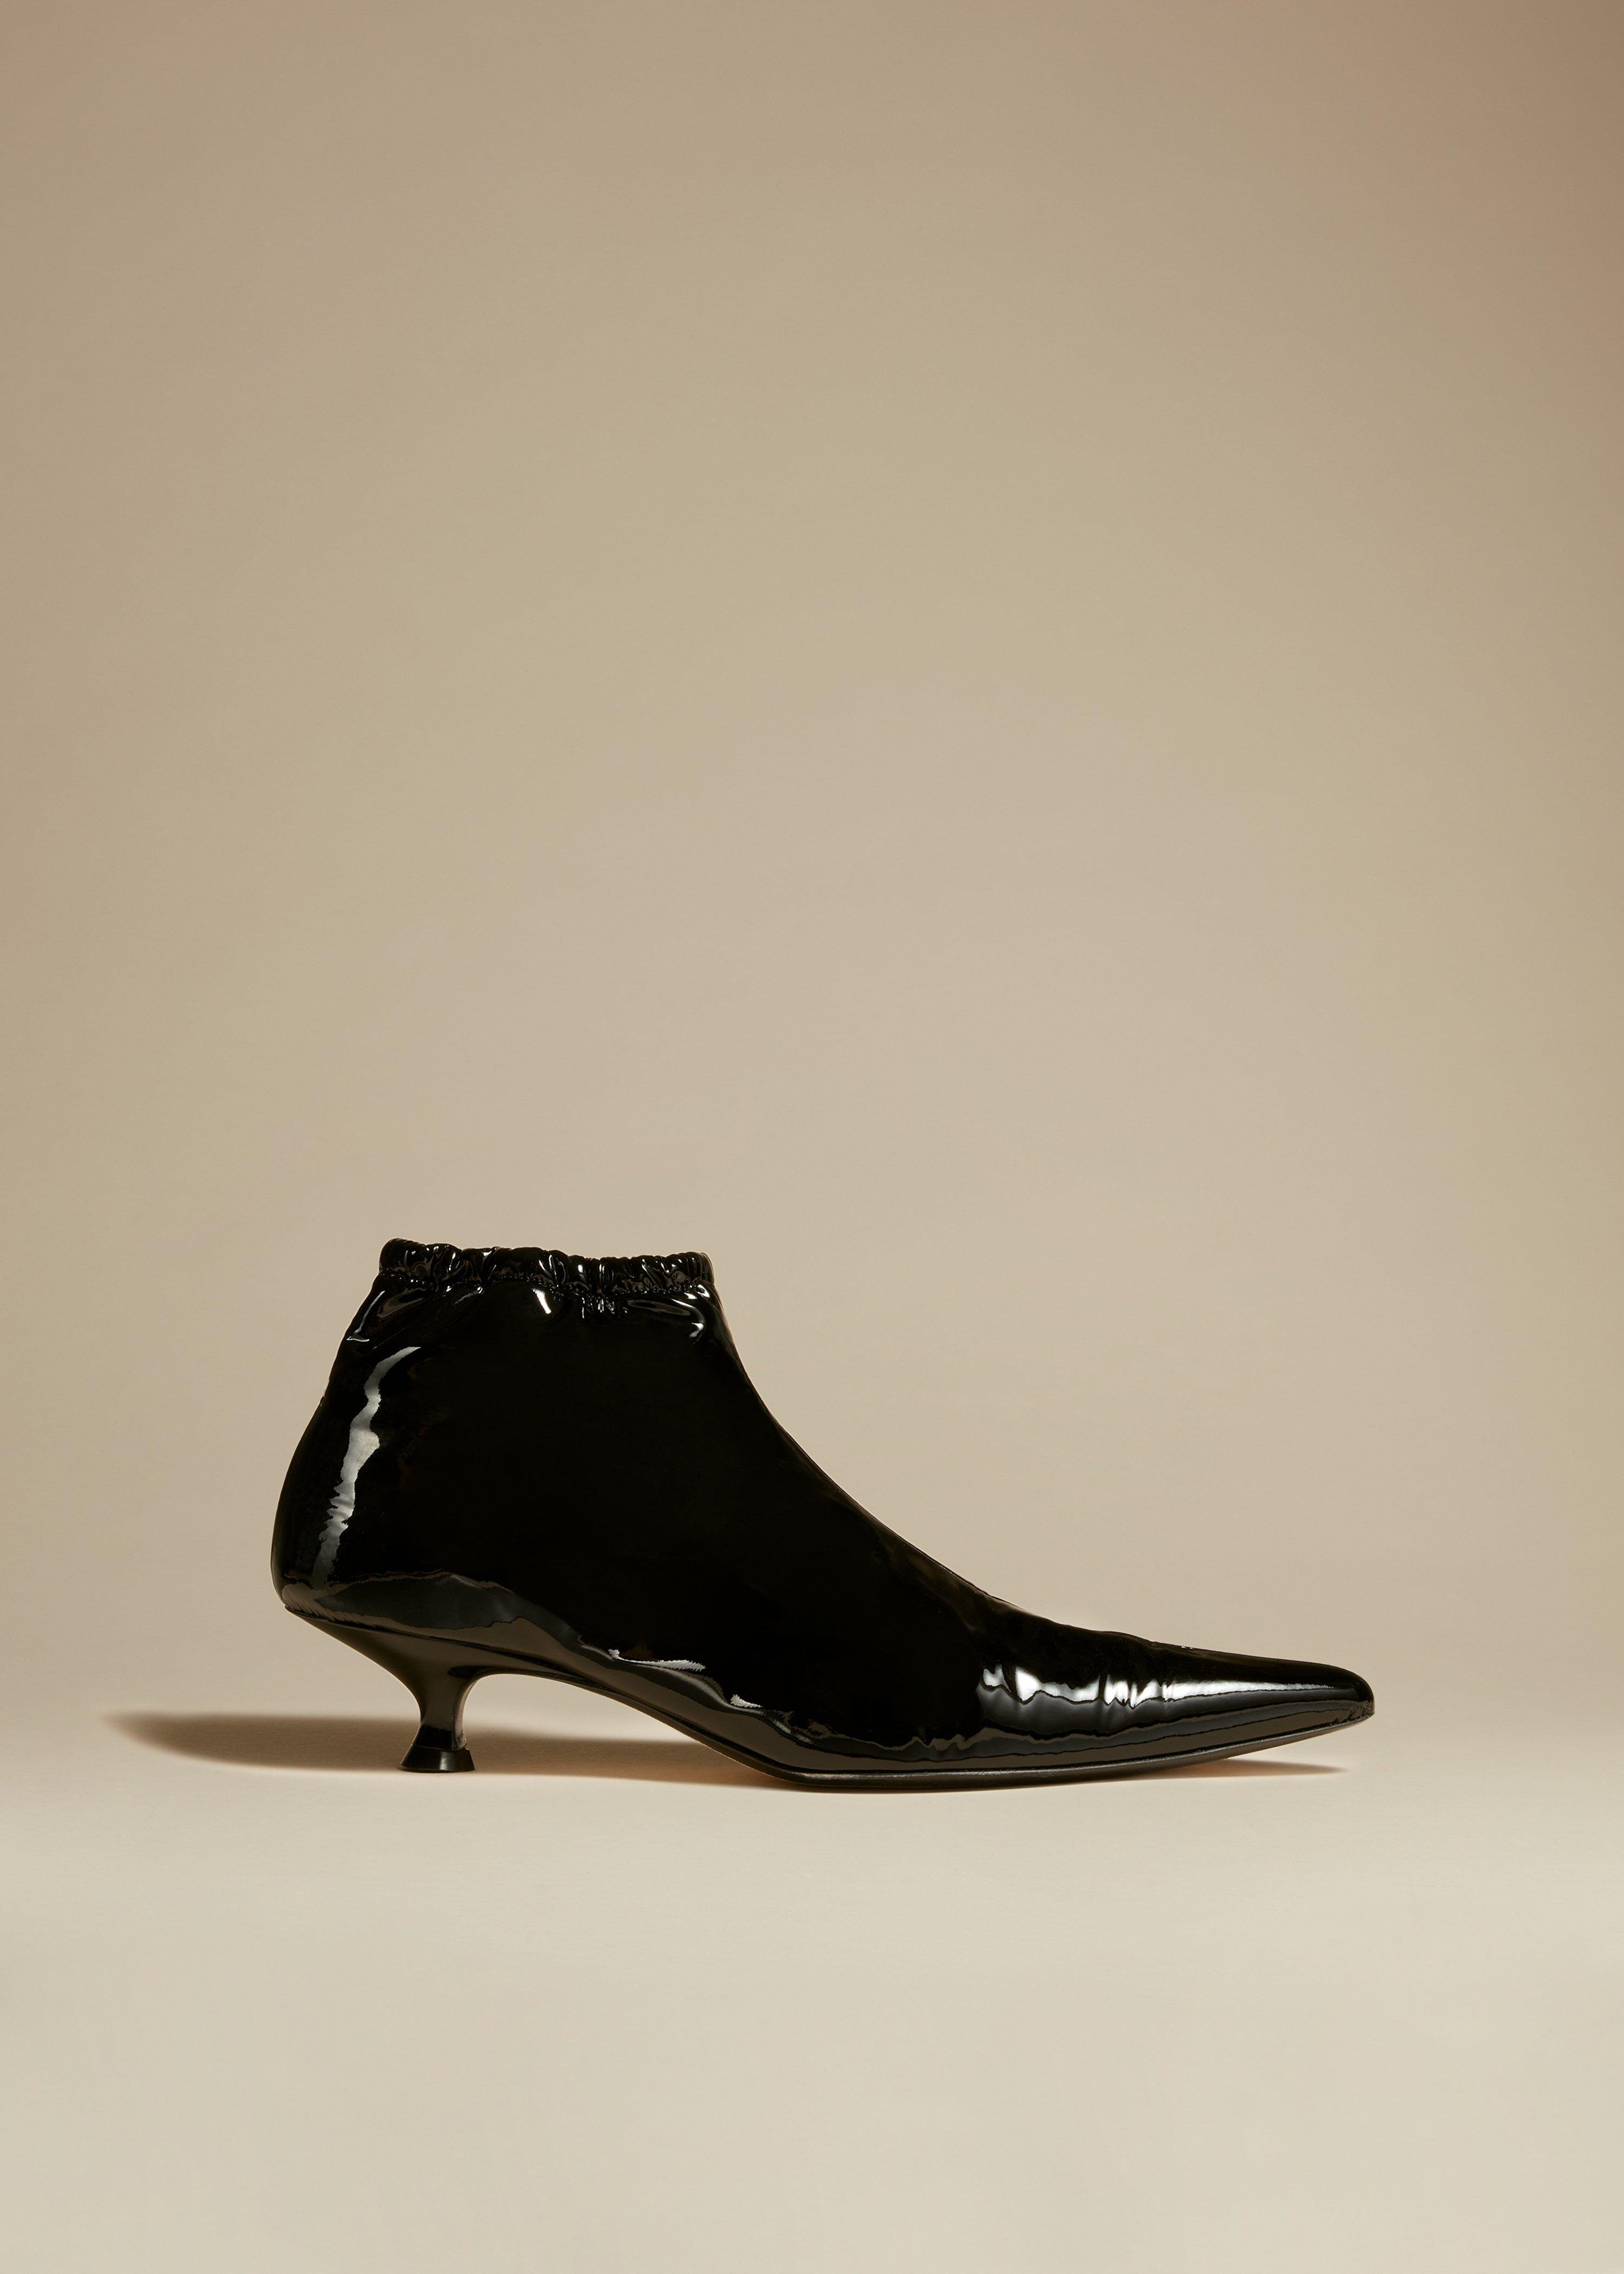 The Volos Boot in Black Patent Leather